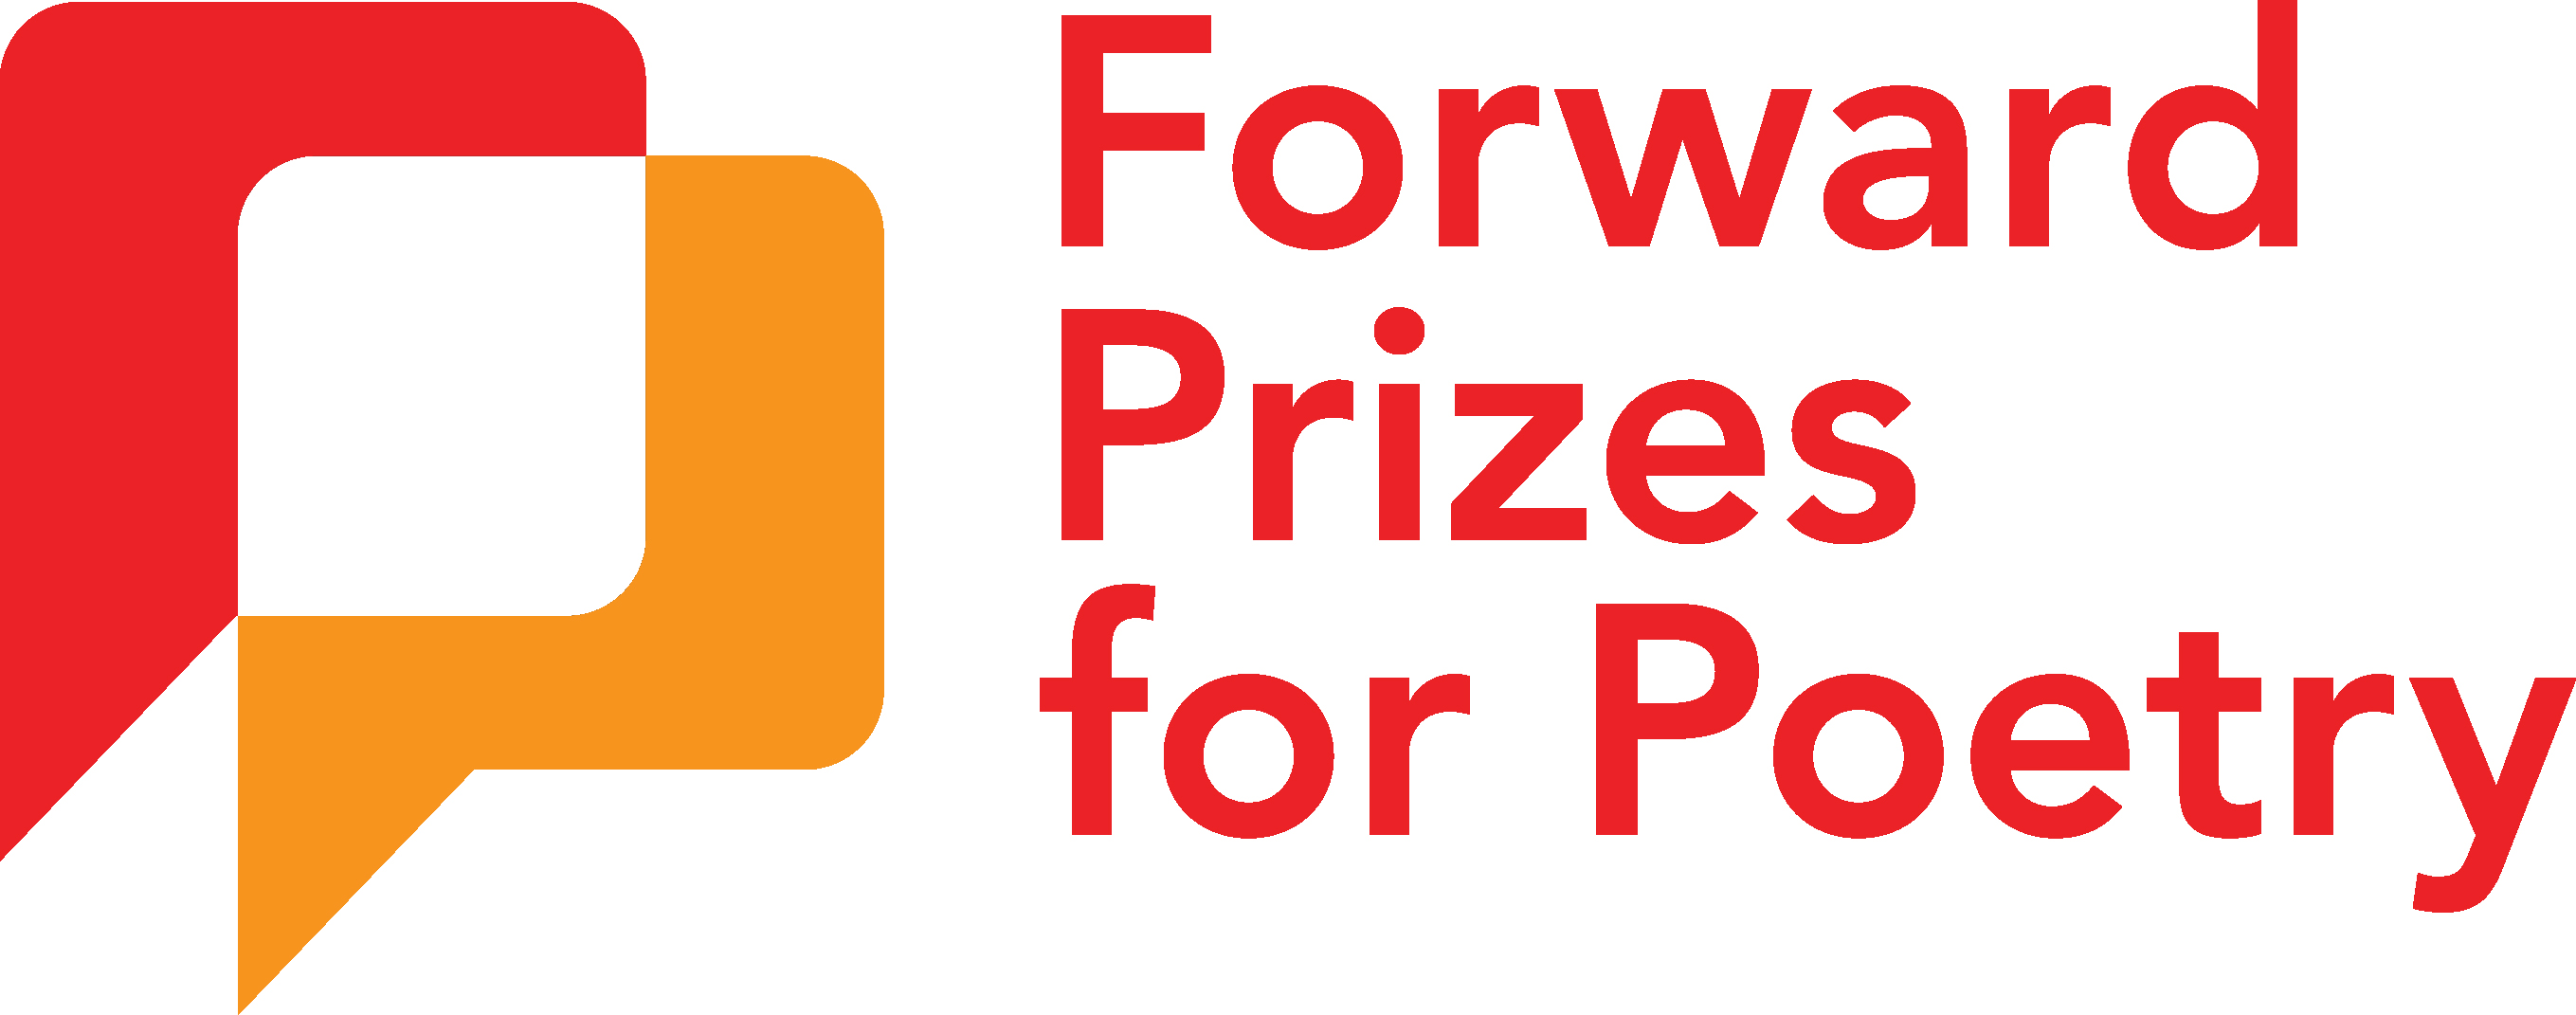 The Forward Prizes for Poetry